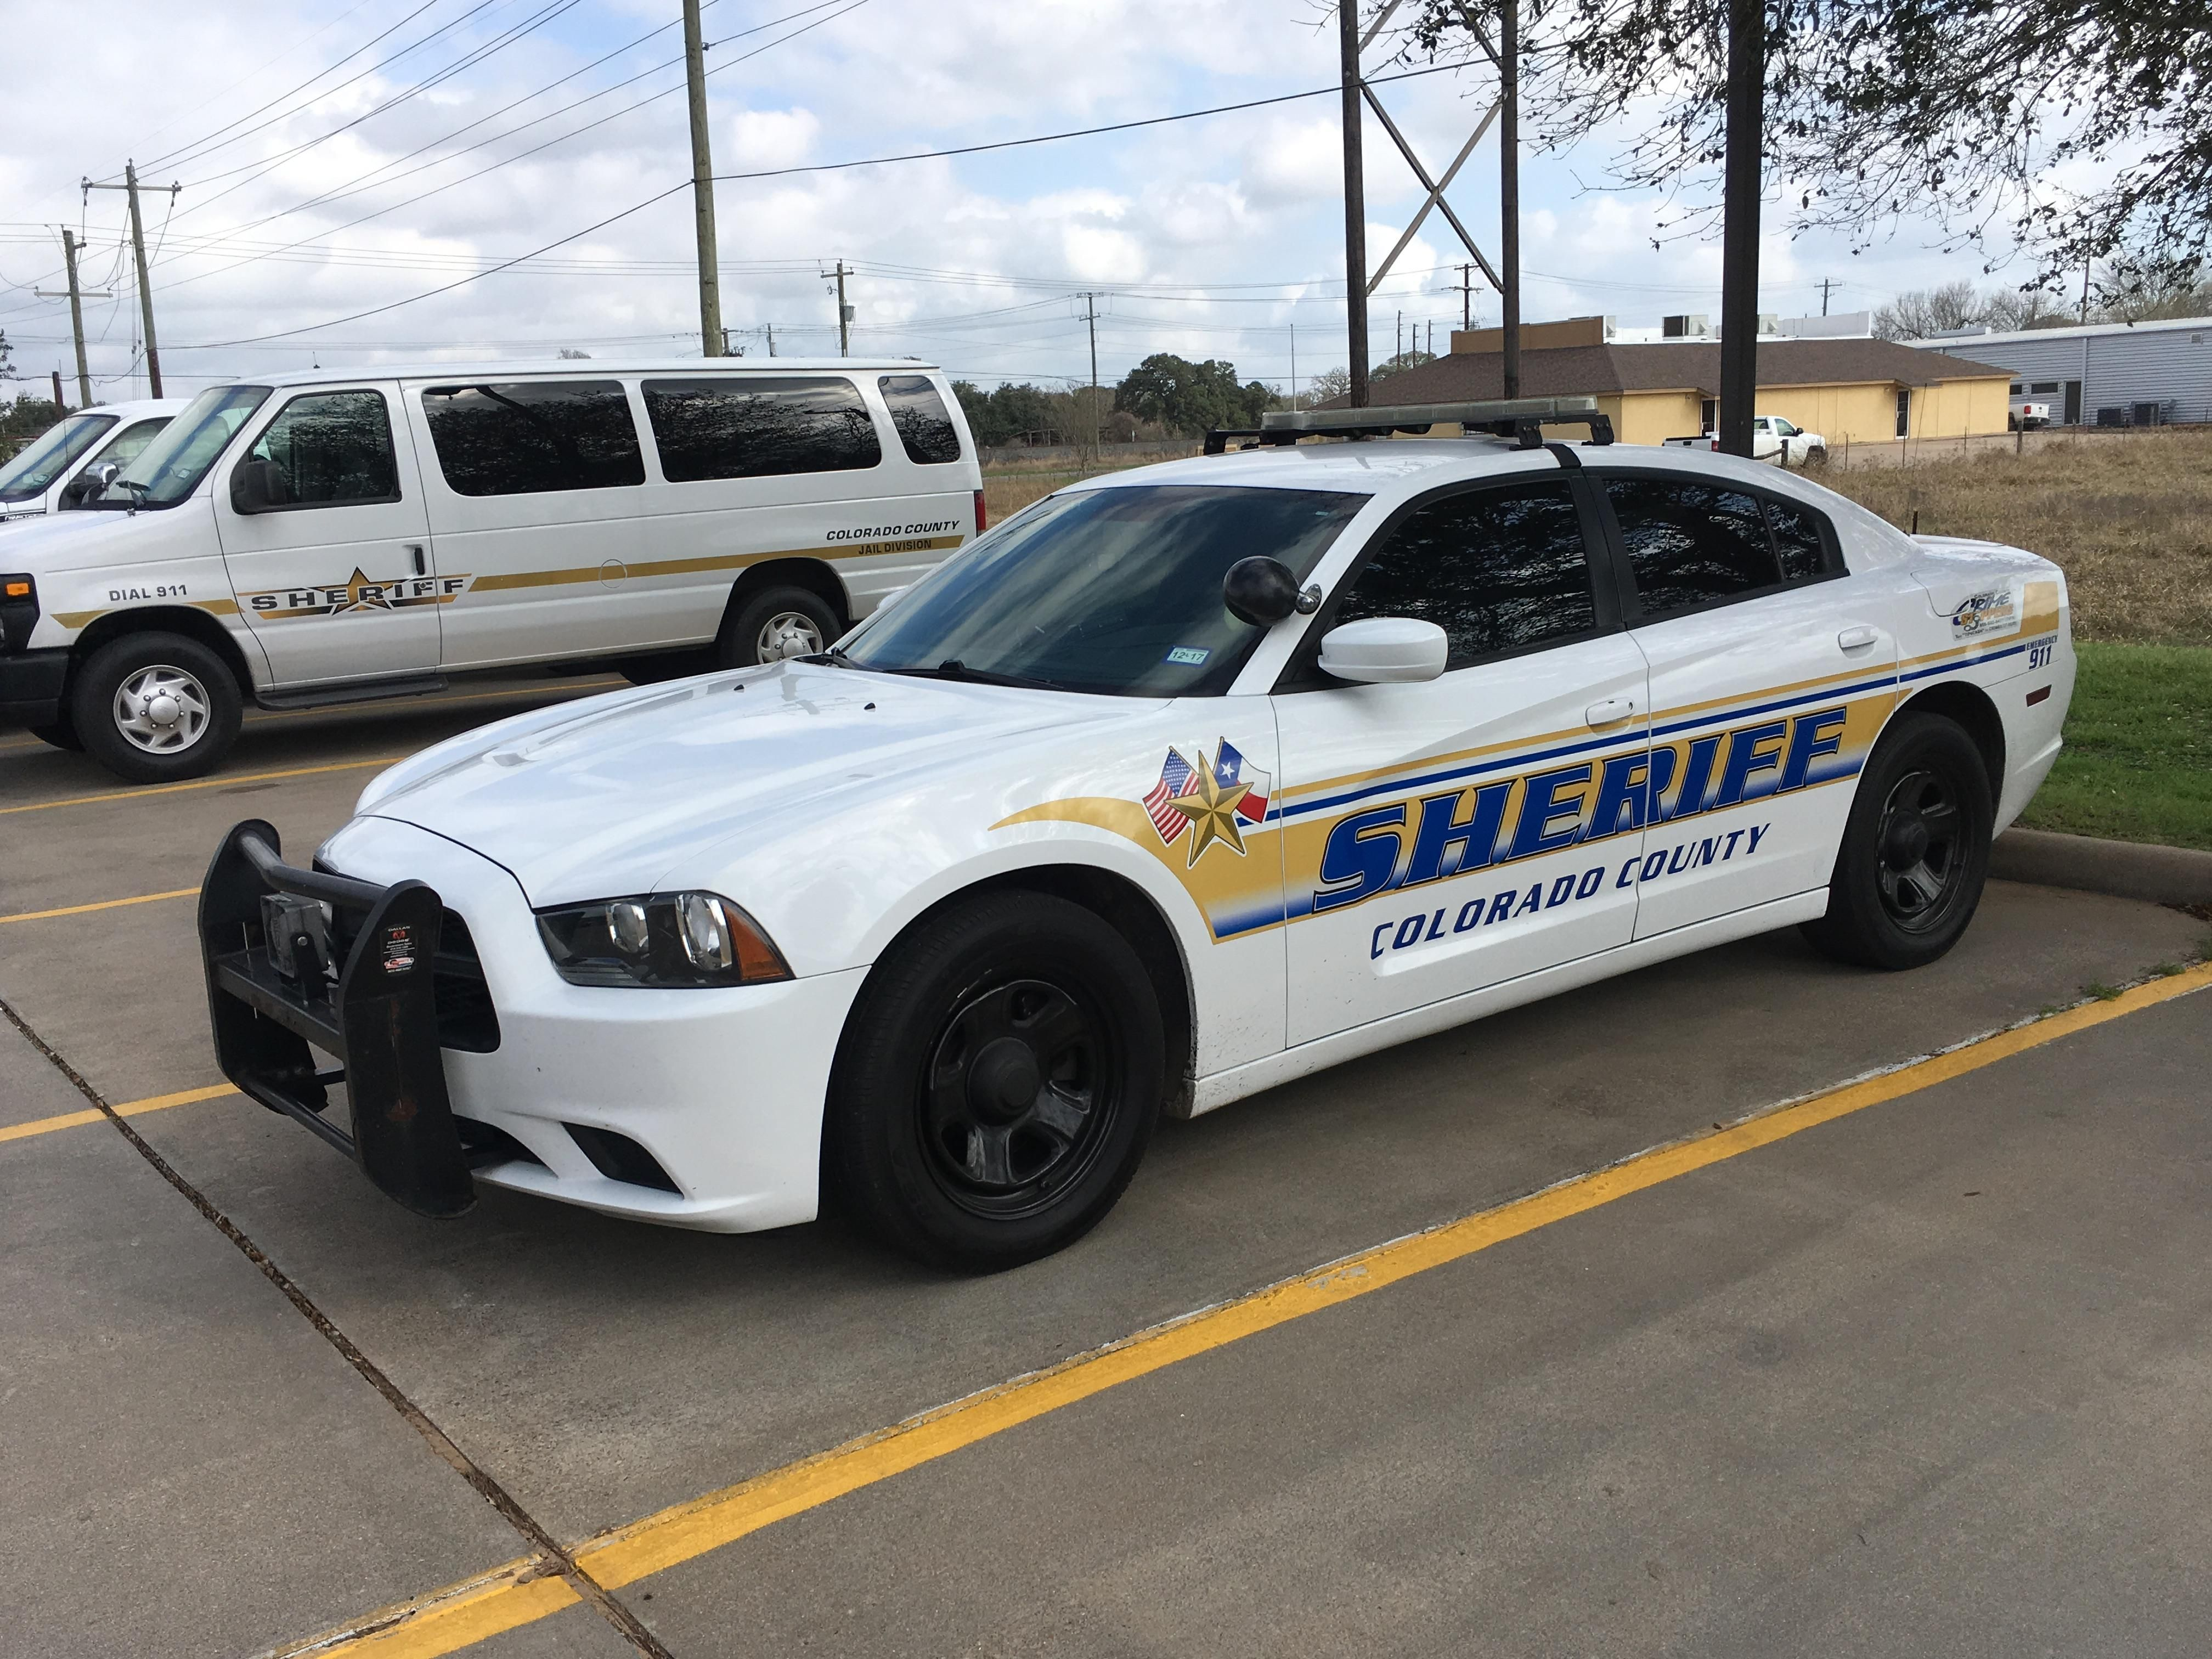 Port Lavaca Chevy >> Colorado County Sheriff's Office Dodge Charger (Texas) | Emergency vehicles, Police cars, Dodge ...